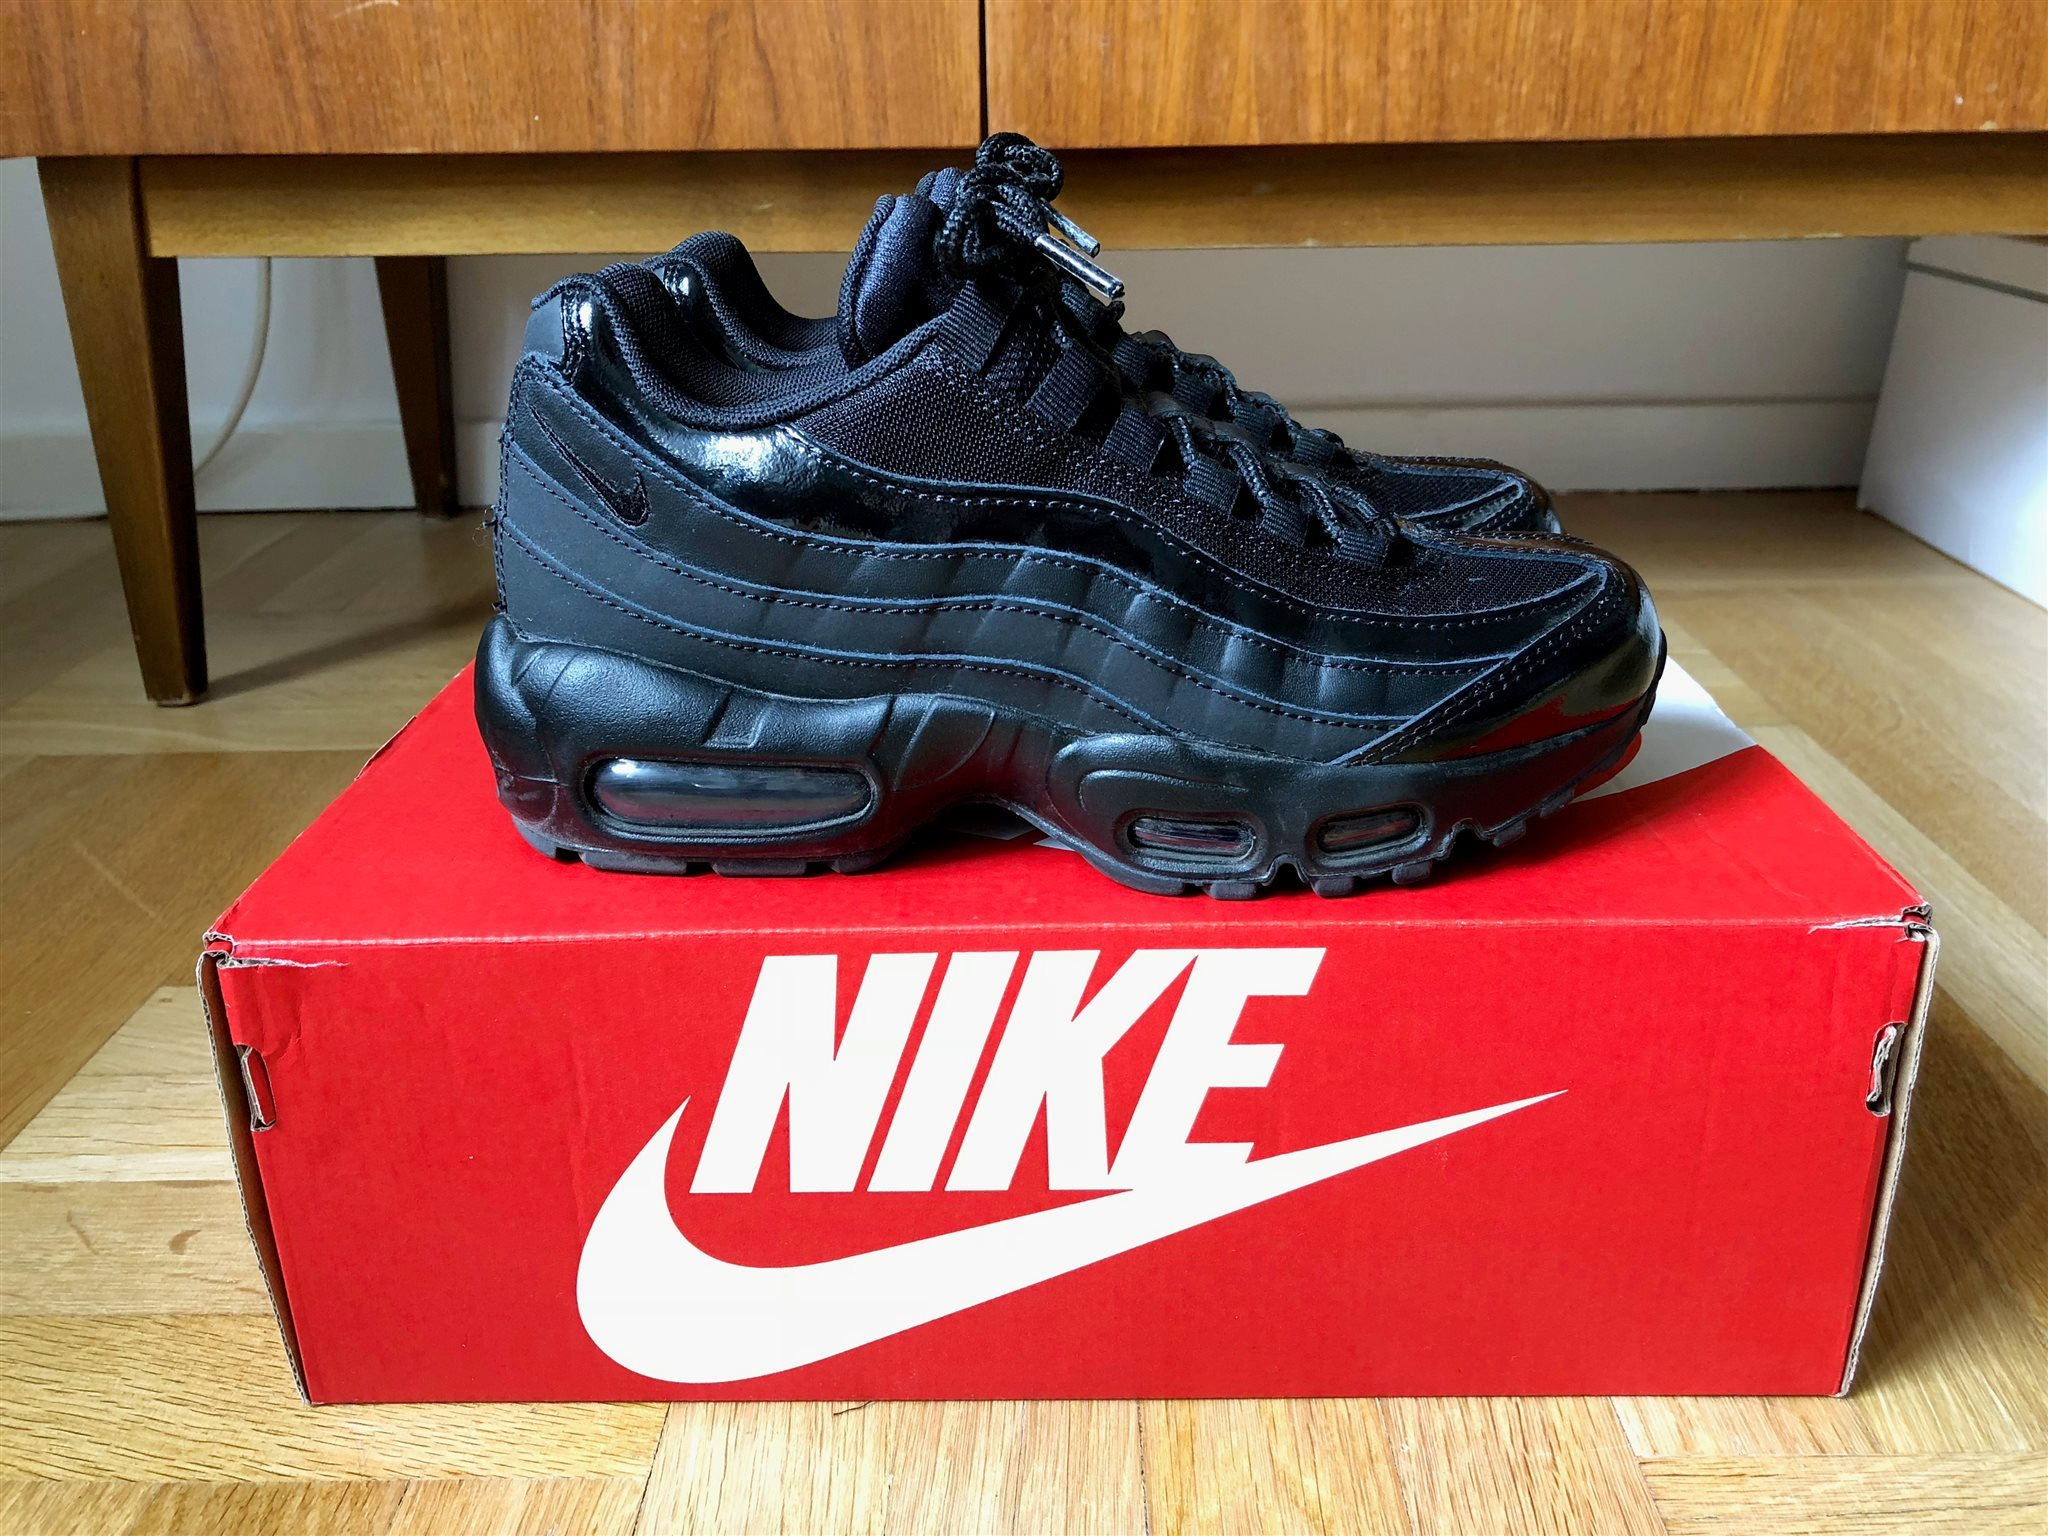 low priced 0b76e 486ad ... germany nike air max 95 storlek 365 1732f dcd57